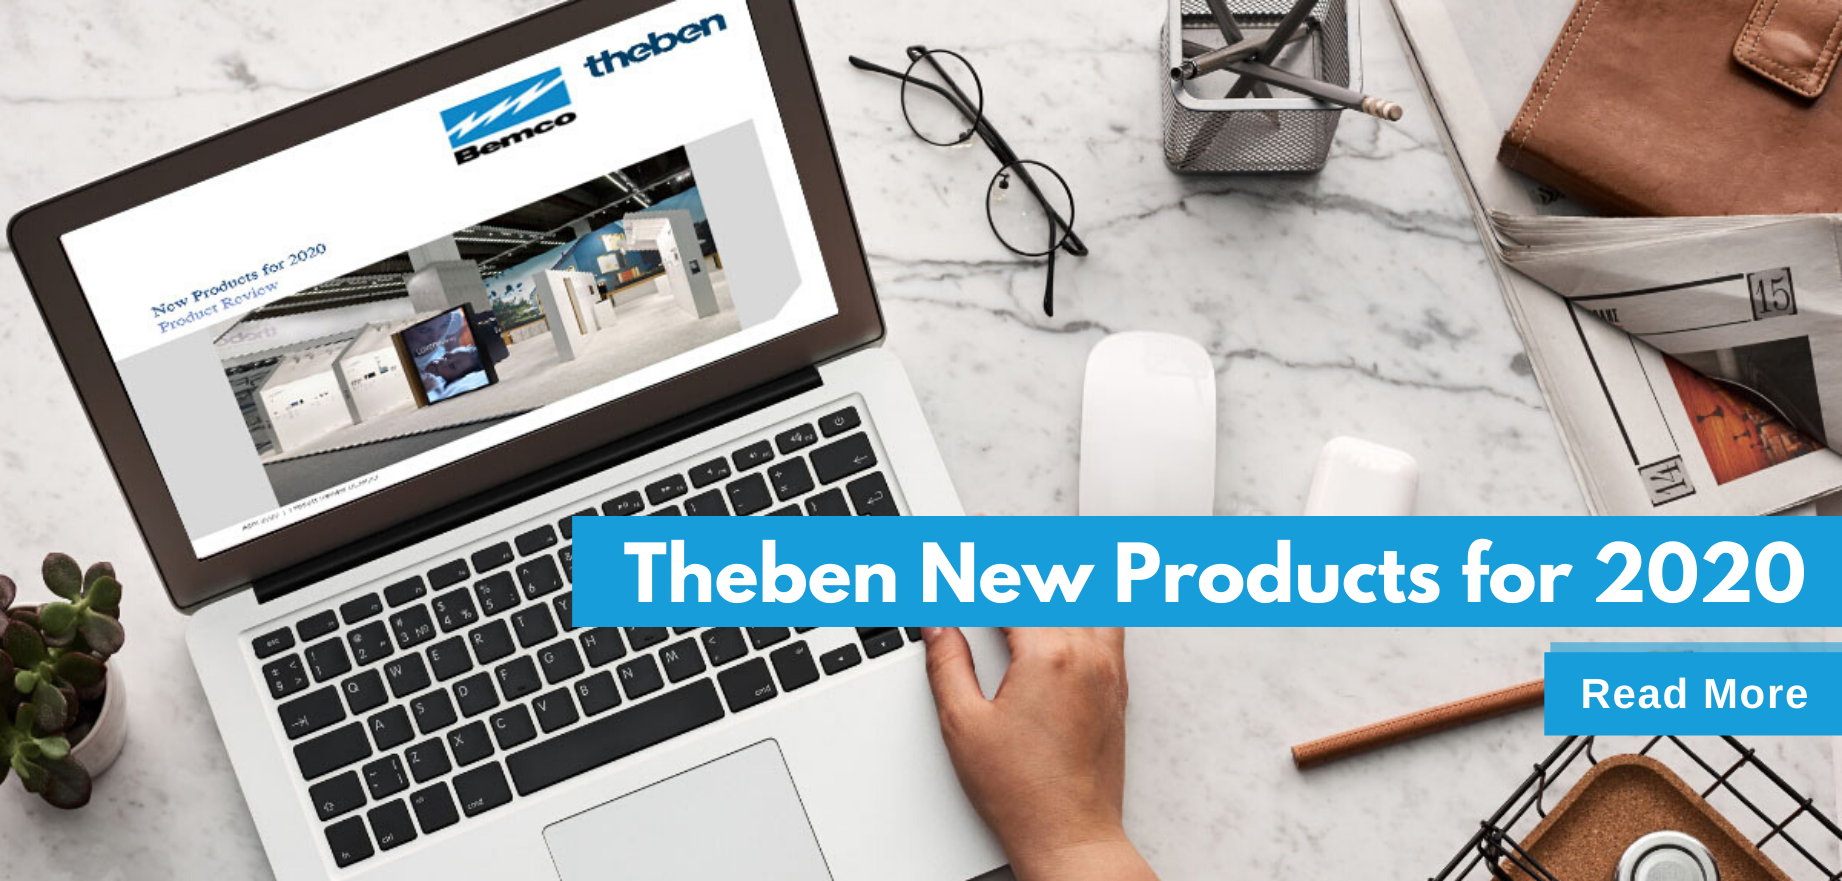 Bemco launched Theben New Products 2020 Presentation